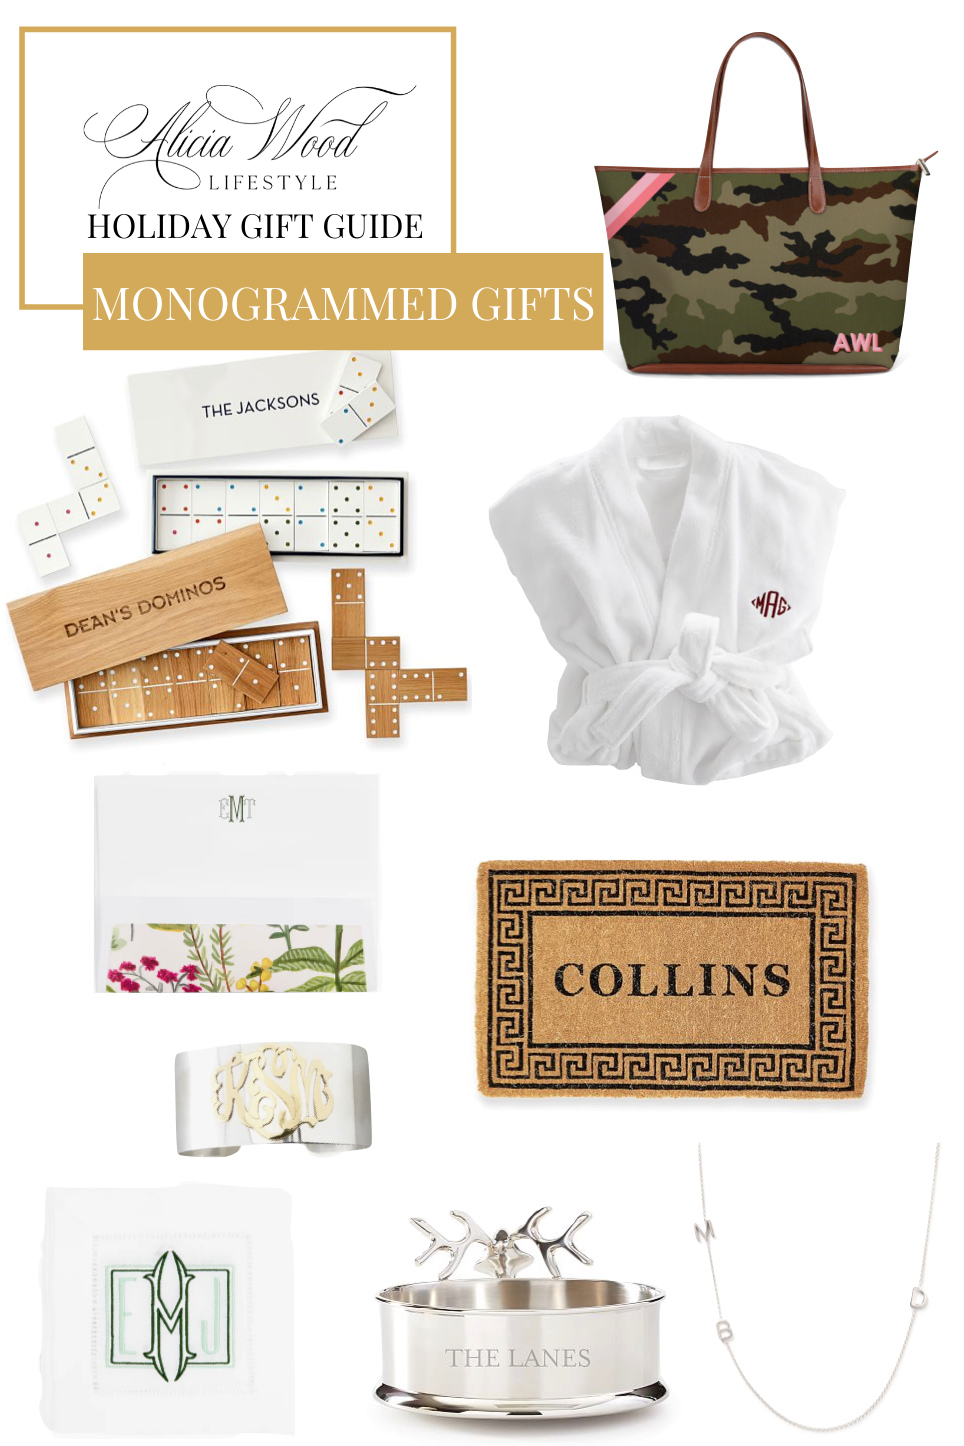 Holiday Gift Guide: Personalized and Monogrammed Gifts